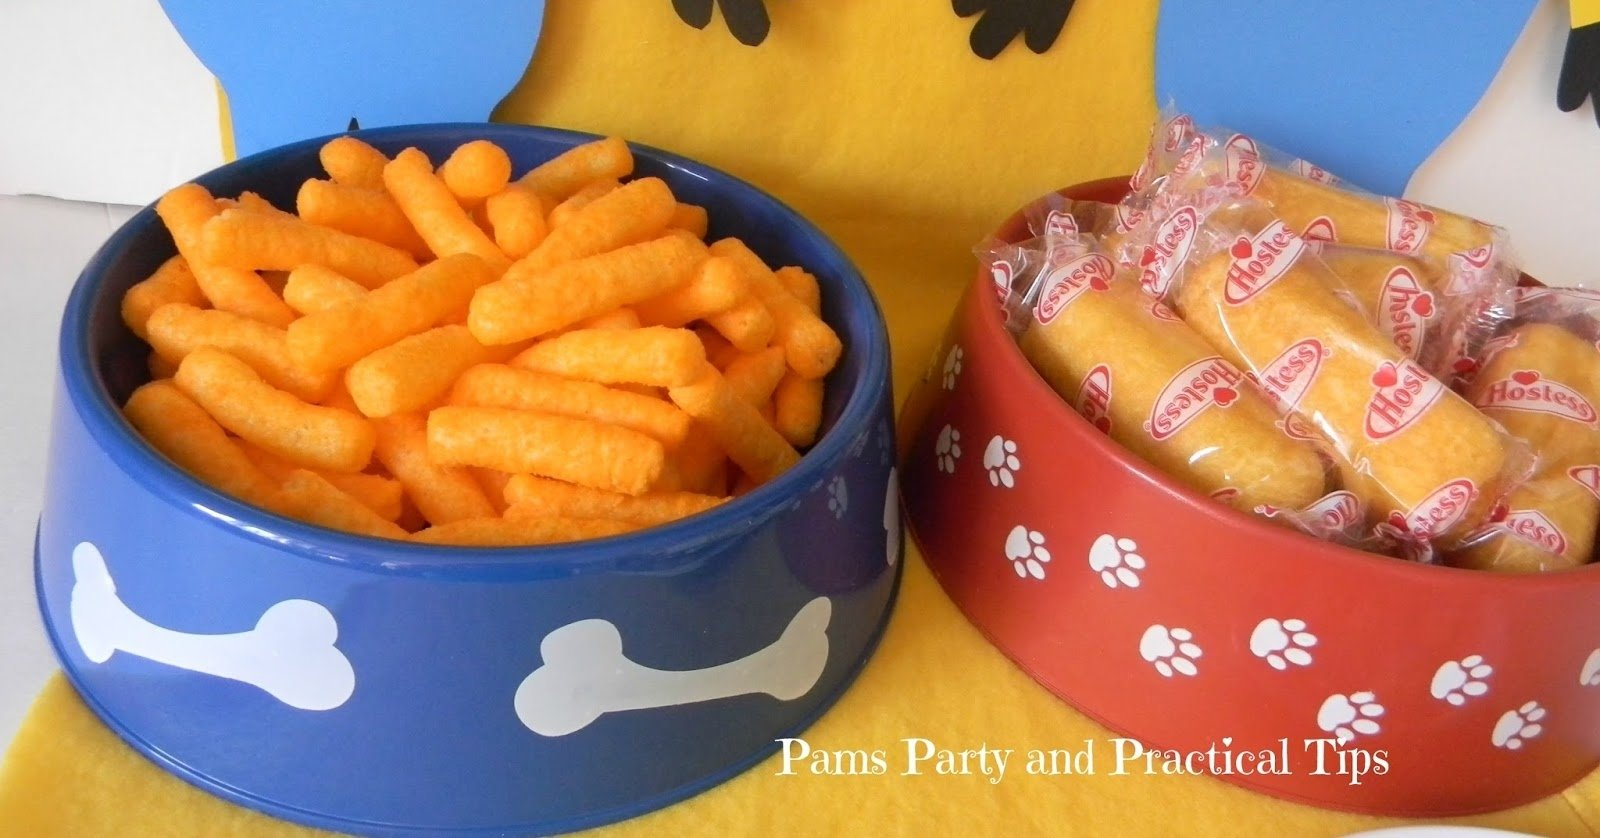 10 Stylish Despicable Me Party Food Ideas pams party practical tips despicable me party food and game ideas 1